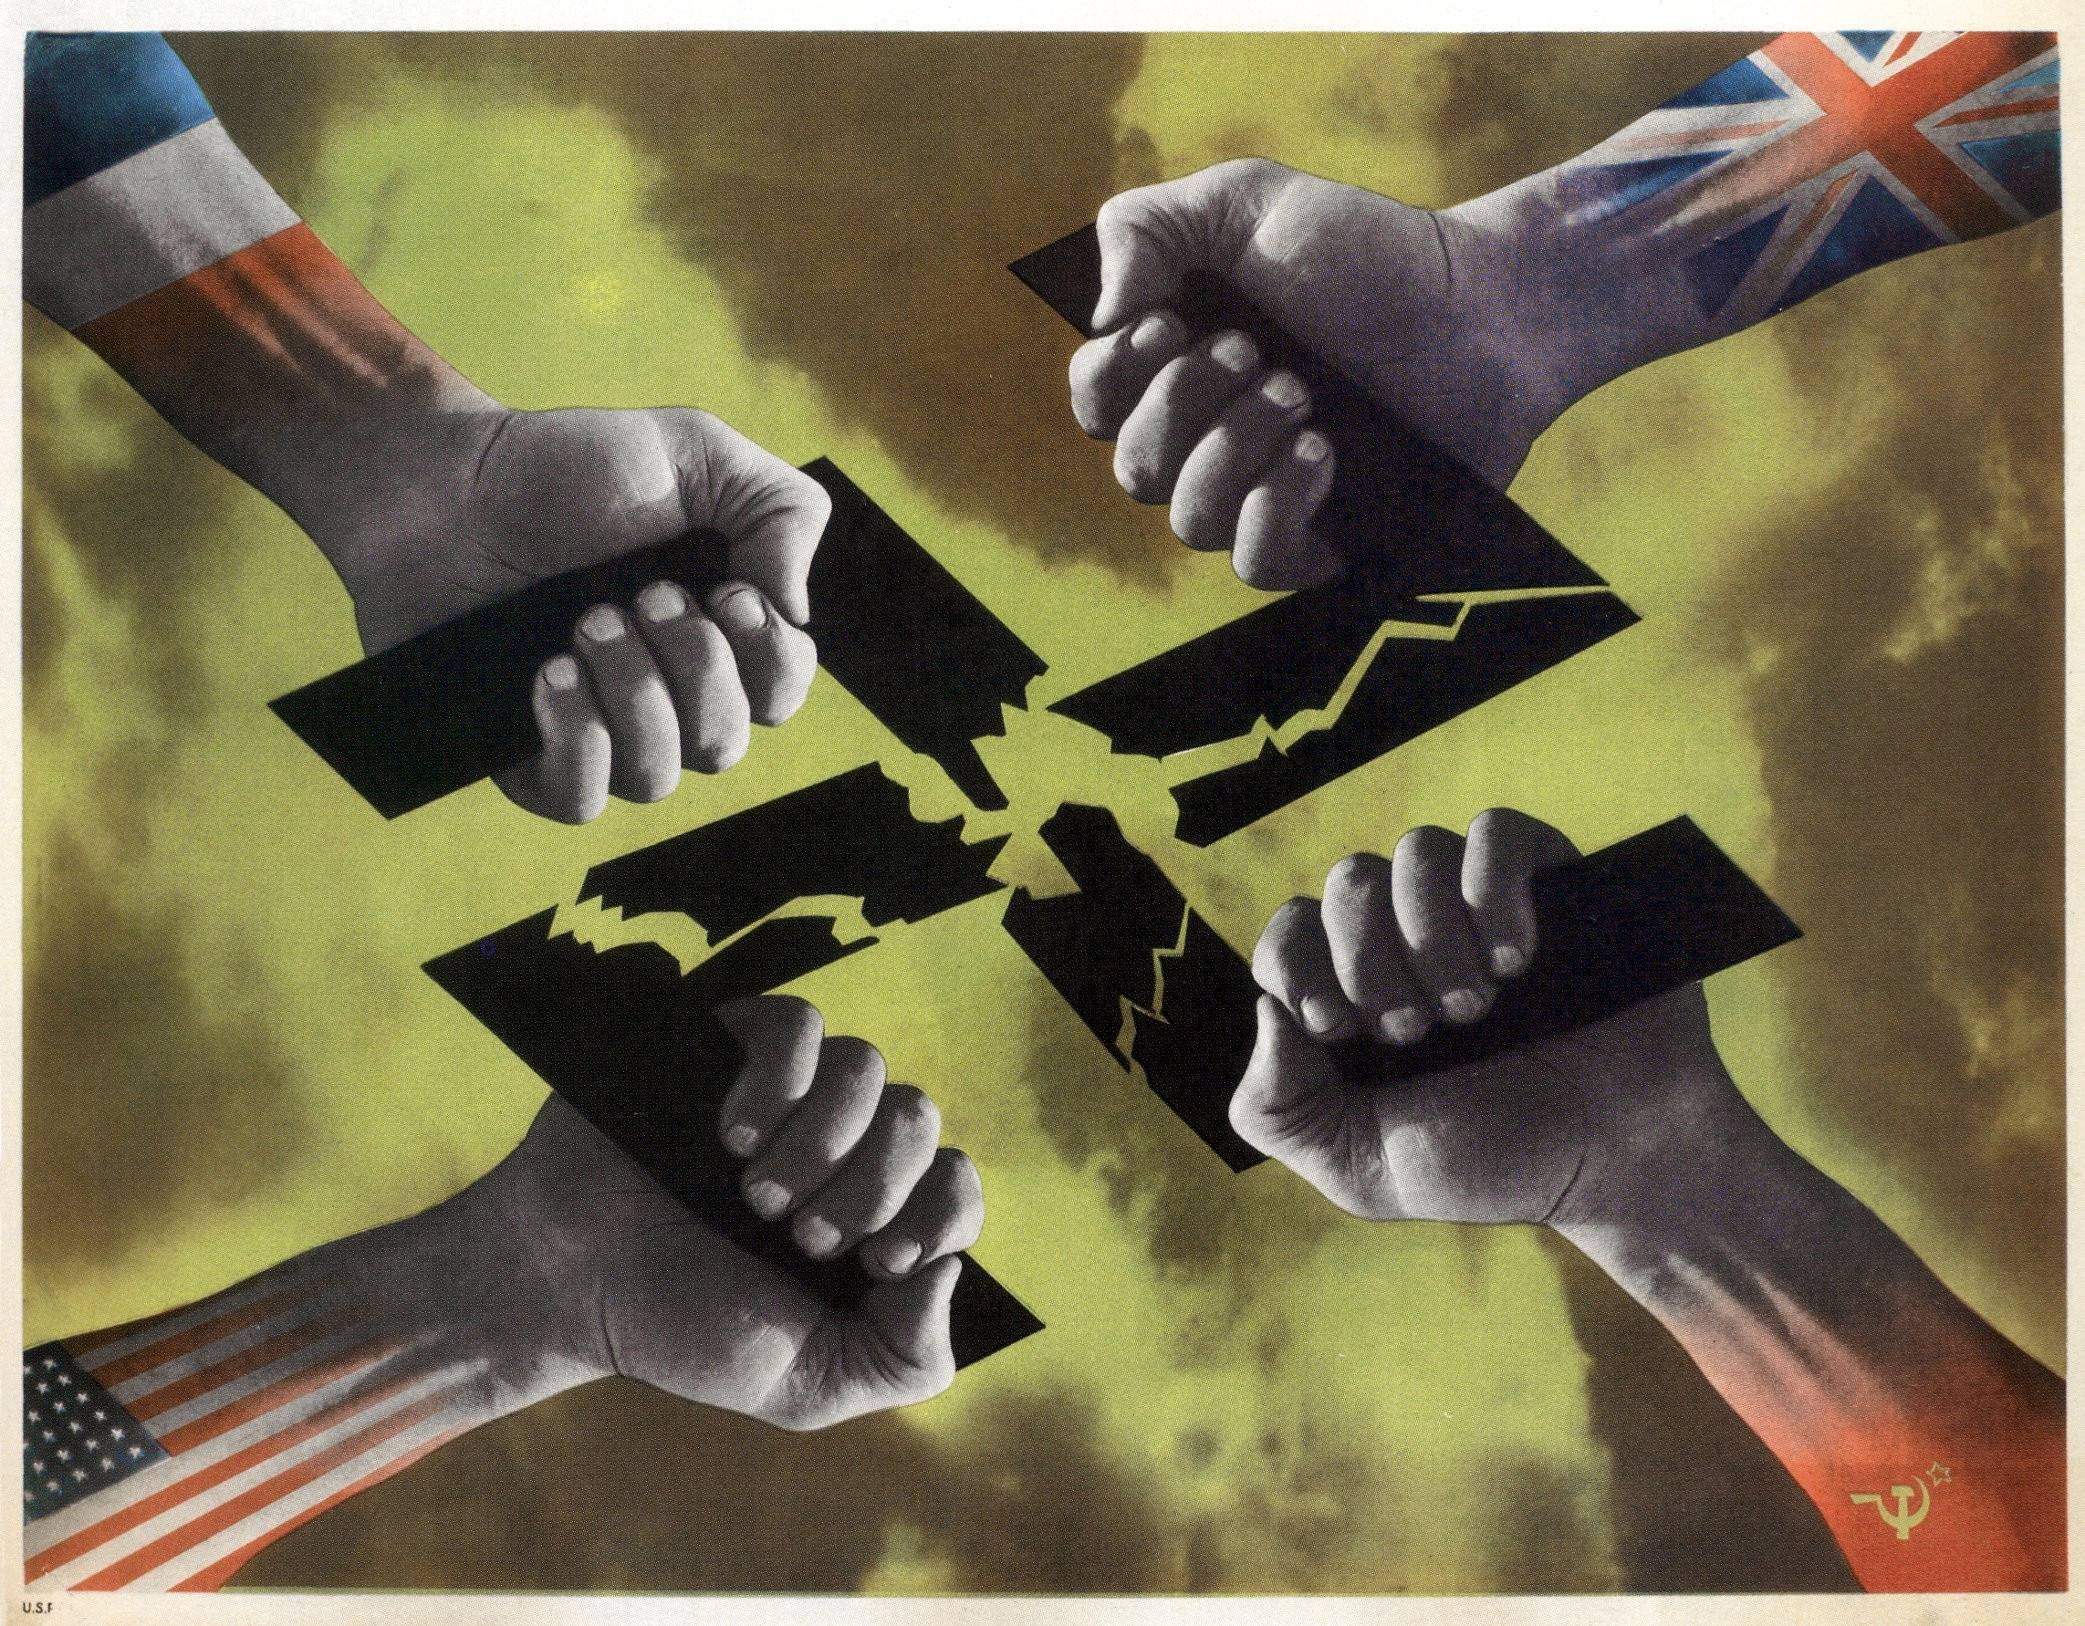 The fists of the Allies breaking the Nazi swastika, France, 1945